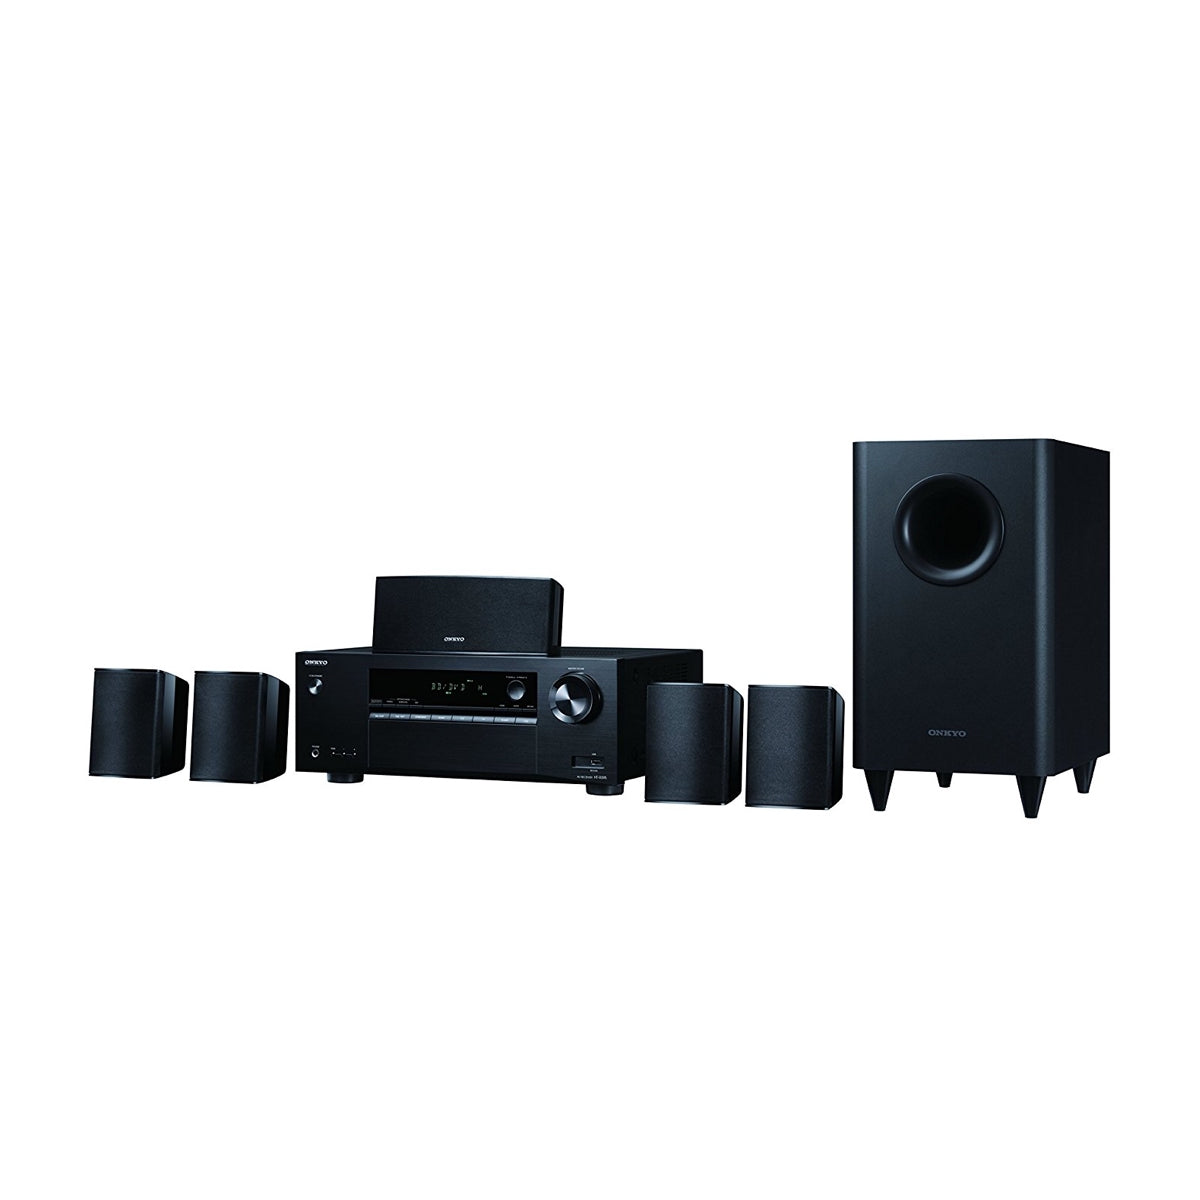 Onkyo HTS-3800 - 5.1 Channel Home Theatre System, Onkyo, Home Theatre in a box - AVStore.in